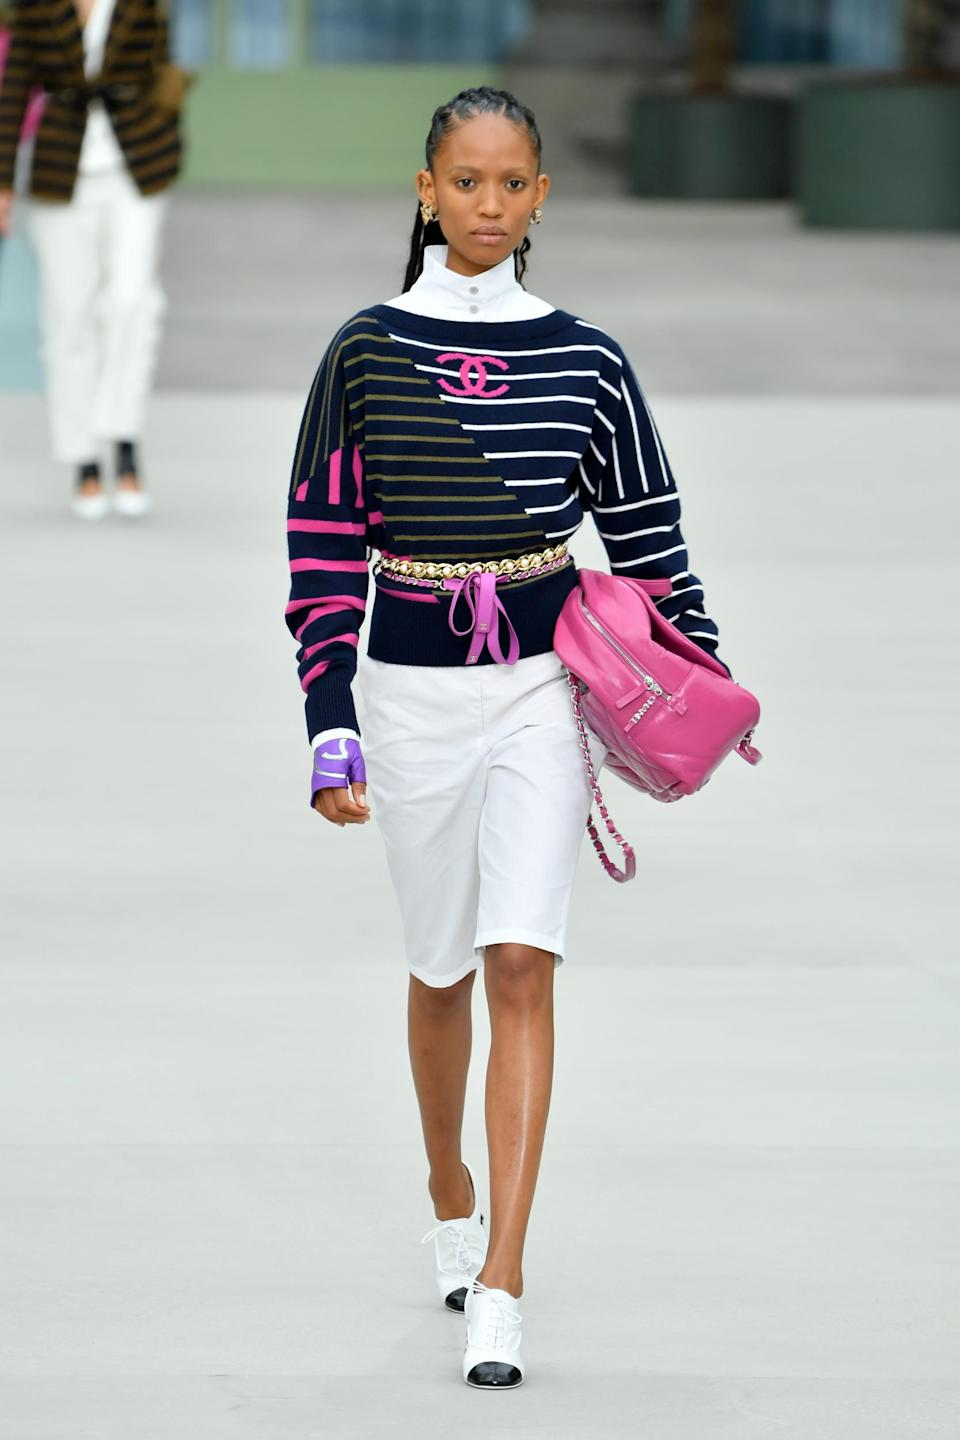 Chanel Cruise 2020: Virginie Viard unveils relaxed look after Lagerfeld